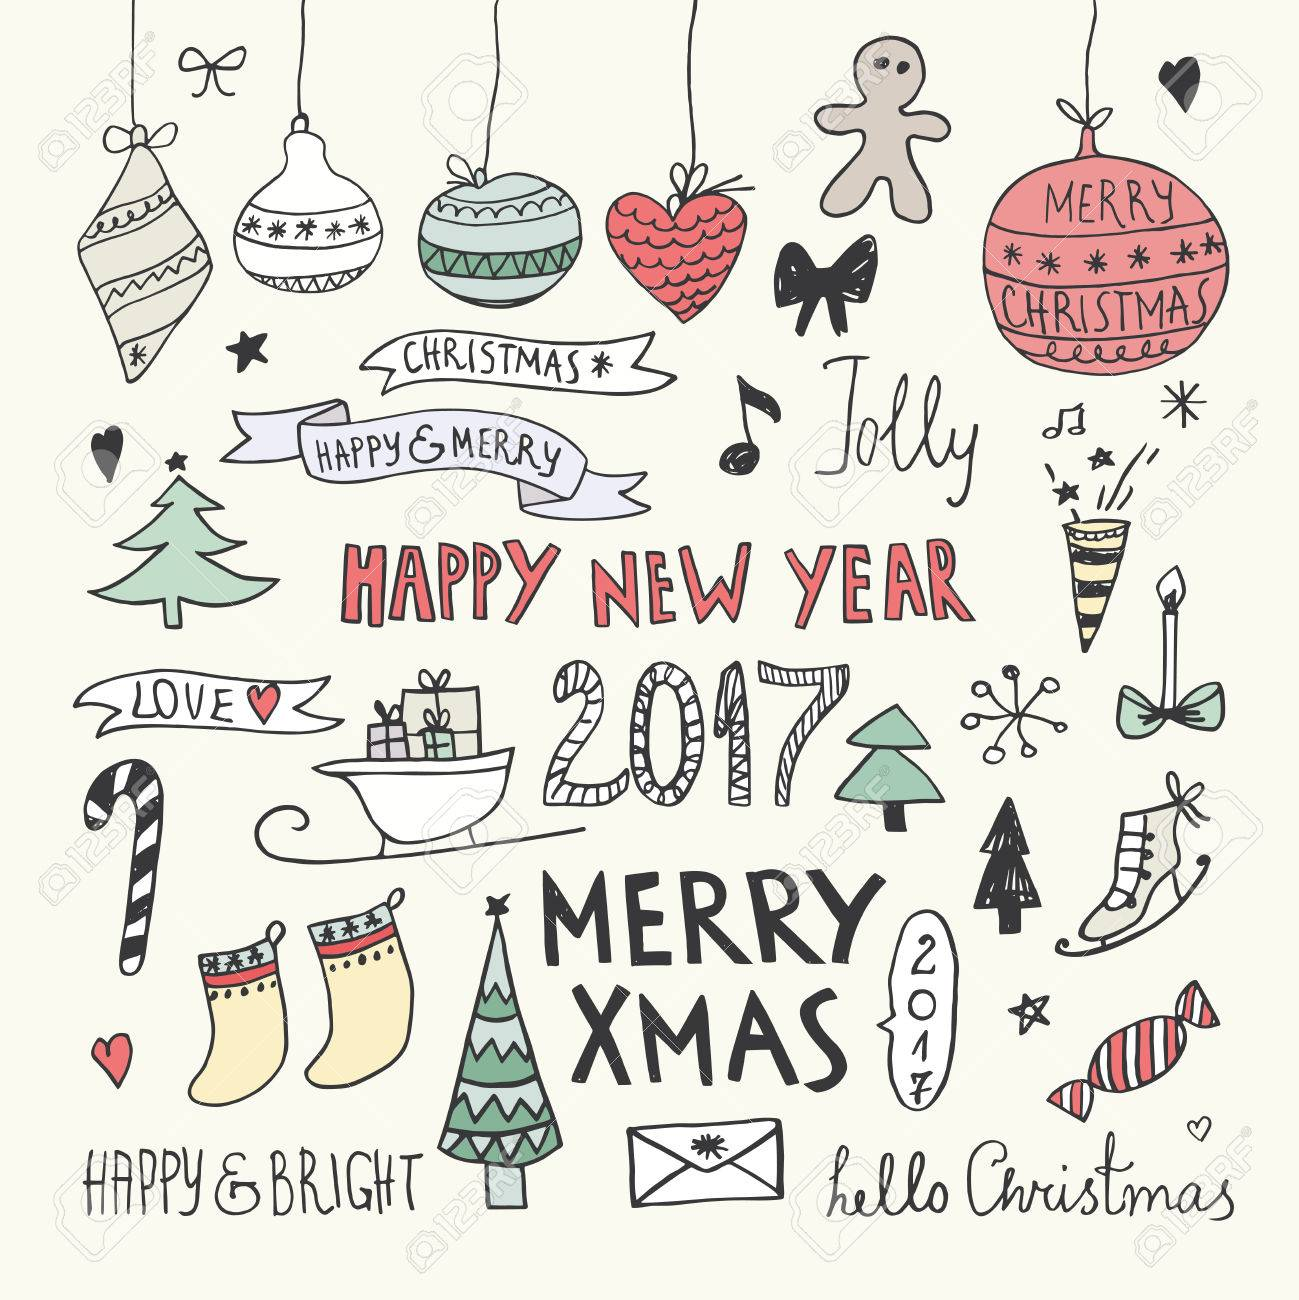 Christmas And New Year Doodles Set Royalty Free Cliparts, Vectors ...